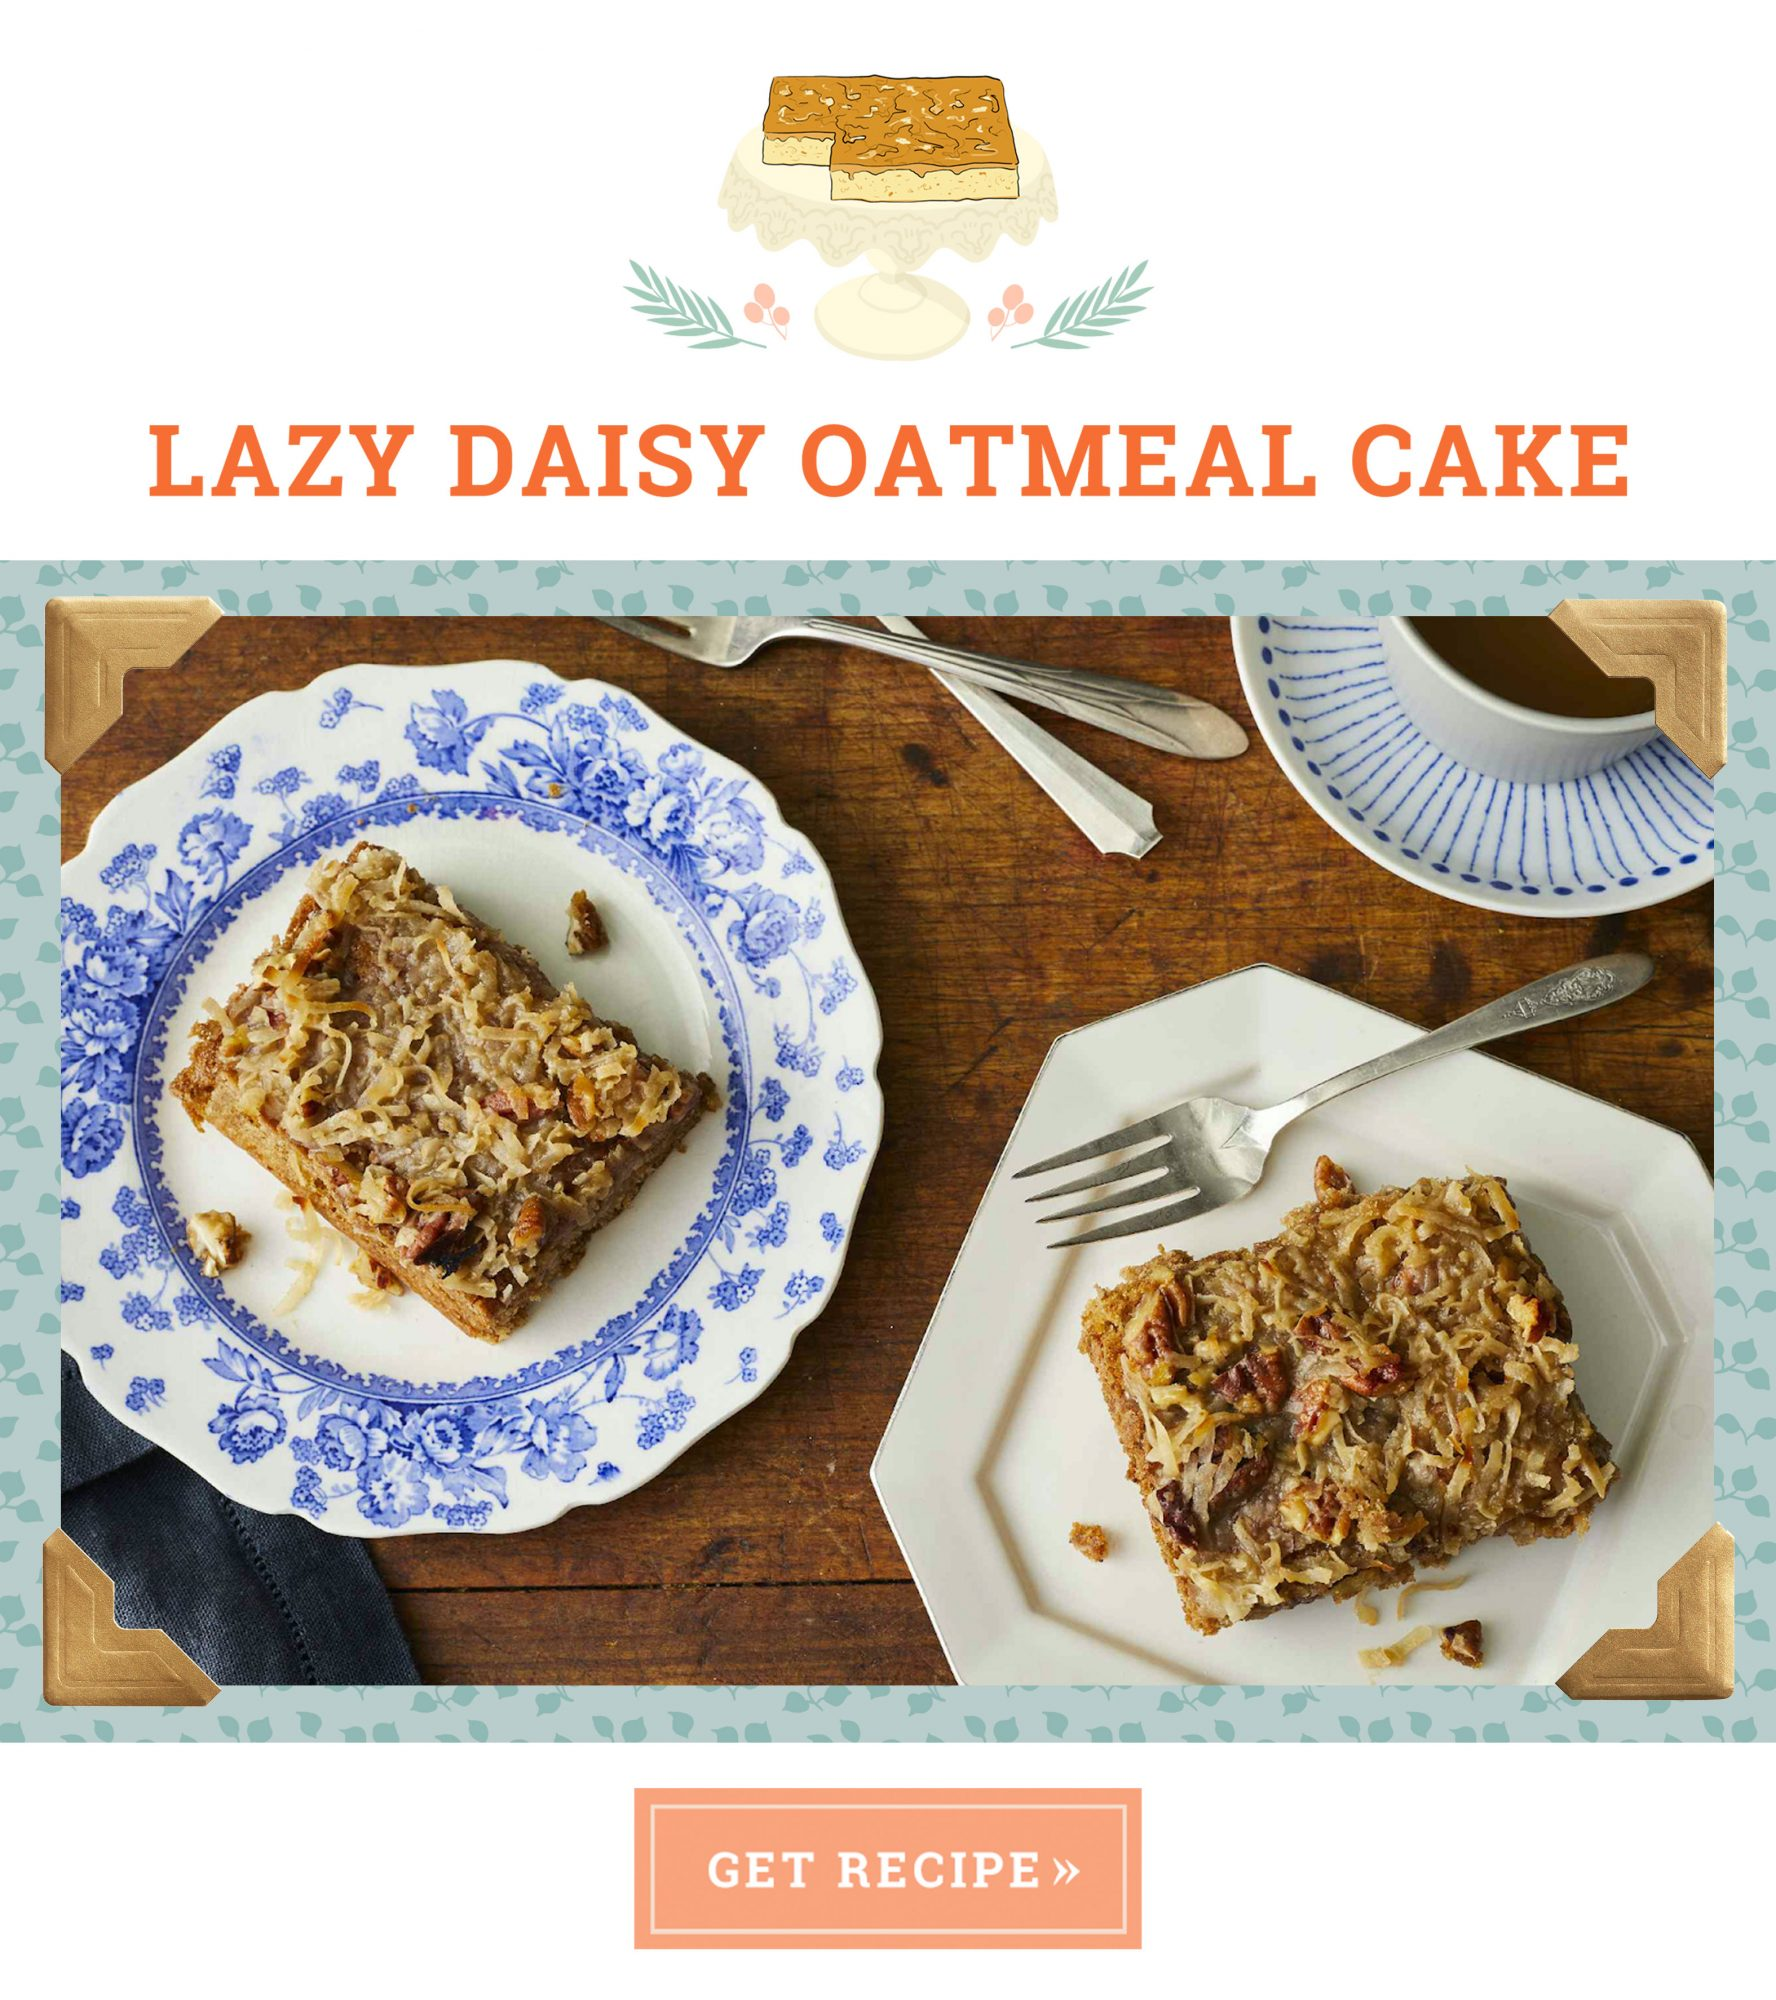 Lazy Daisy Oatmeal Cake Recipe and Button